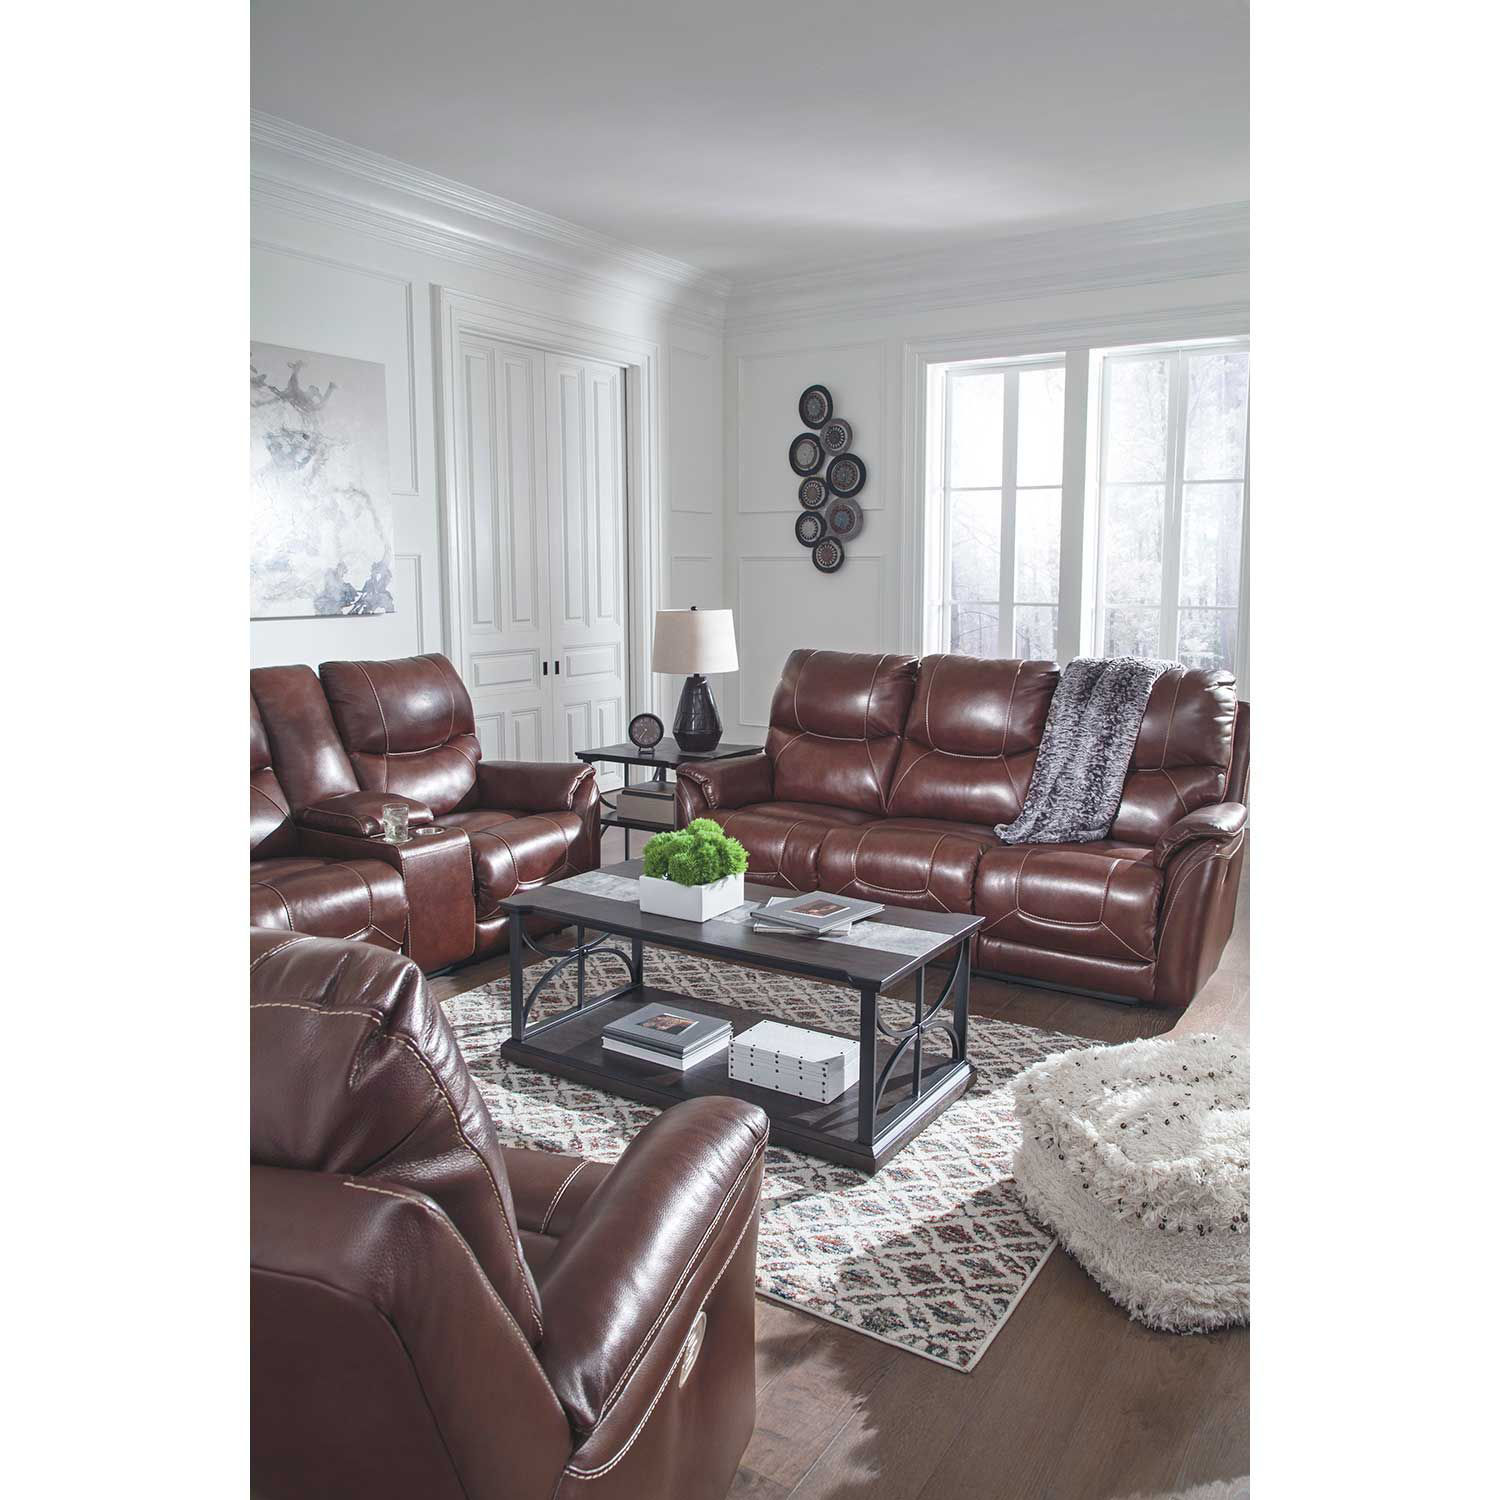 Picture of Dellington Walnut Power Reclining Sofa with Adjustable Headrest and Lumbar